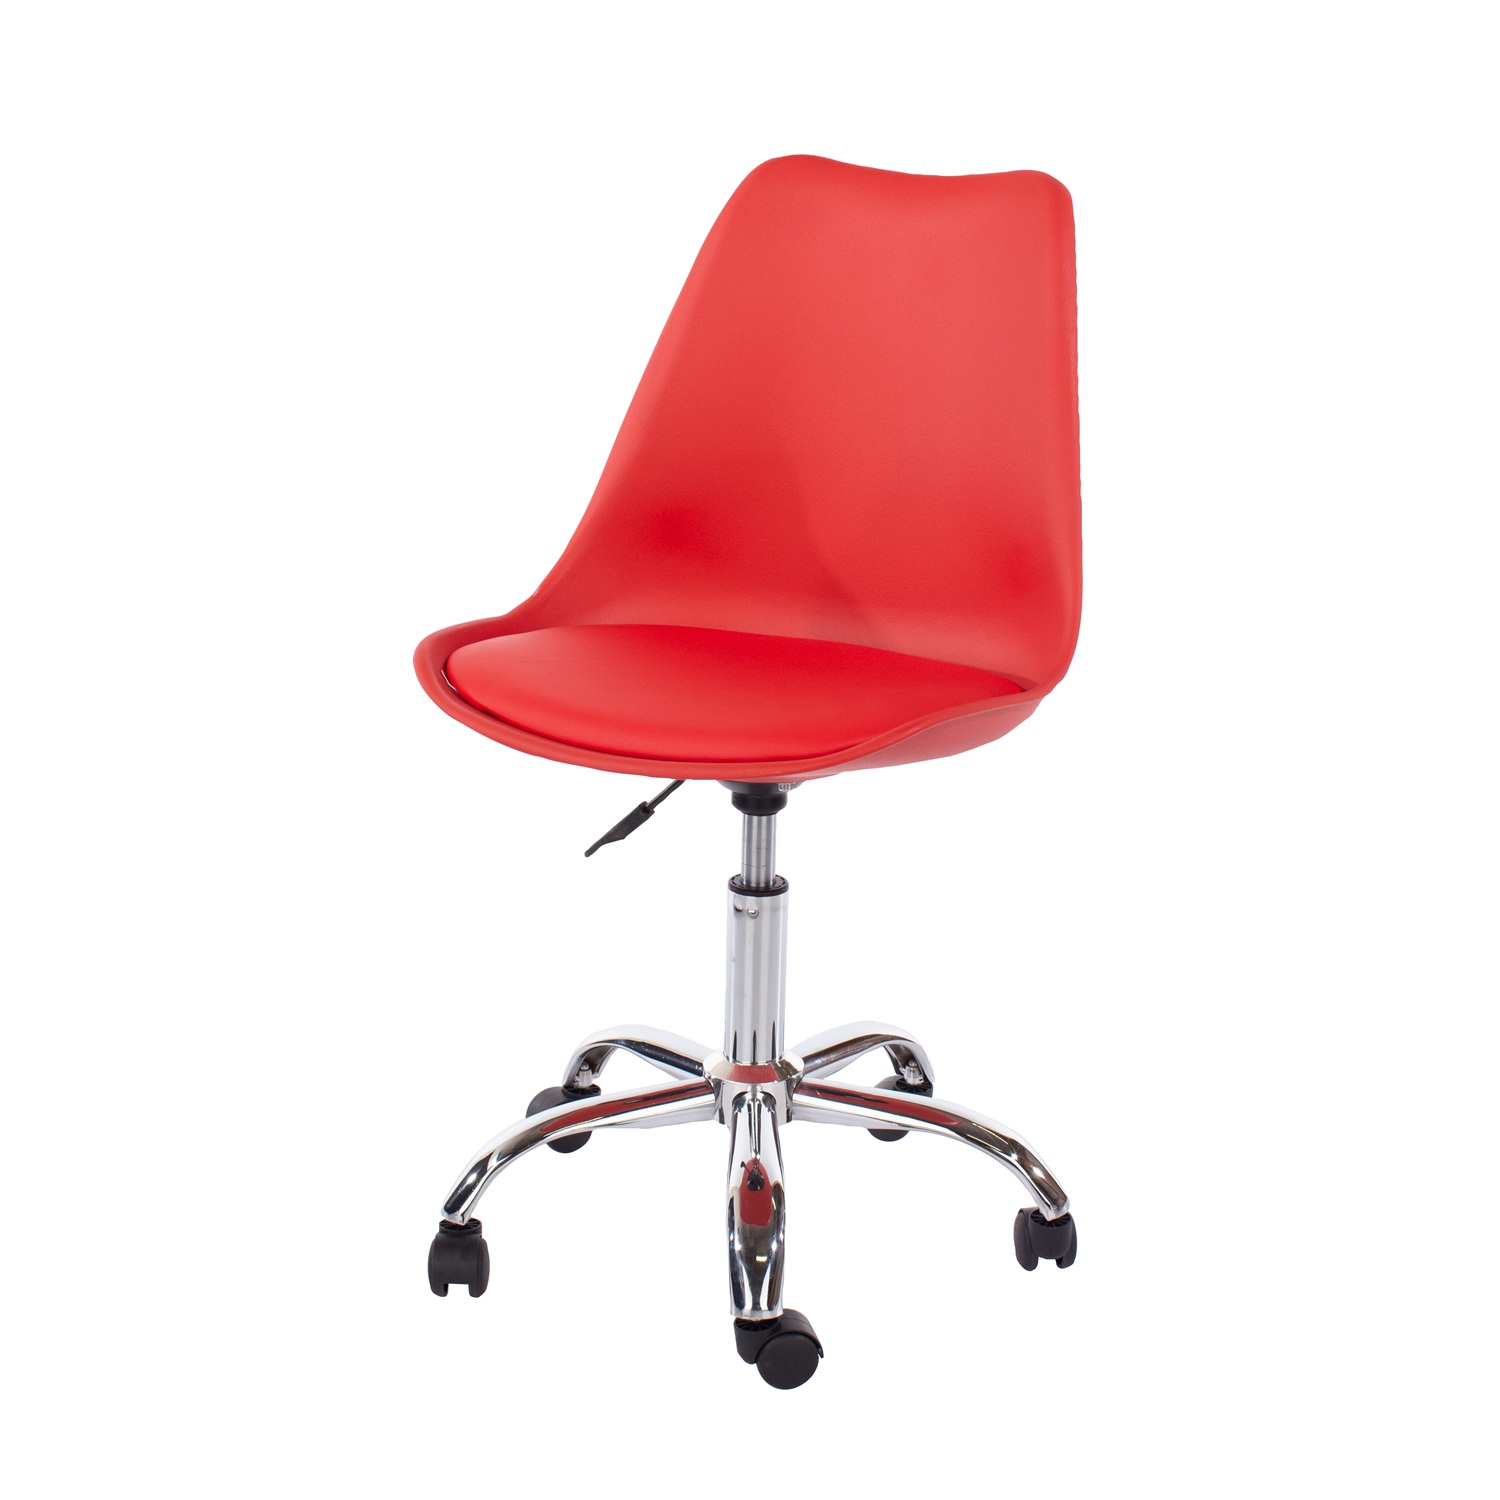 home studio chair with upholstered seat in red